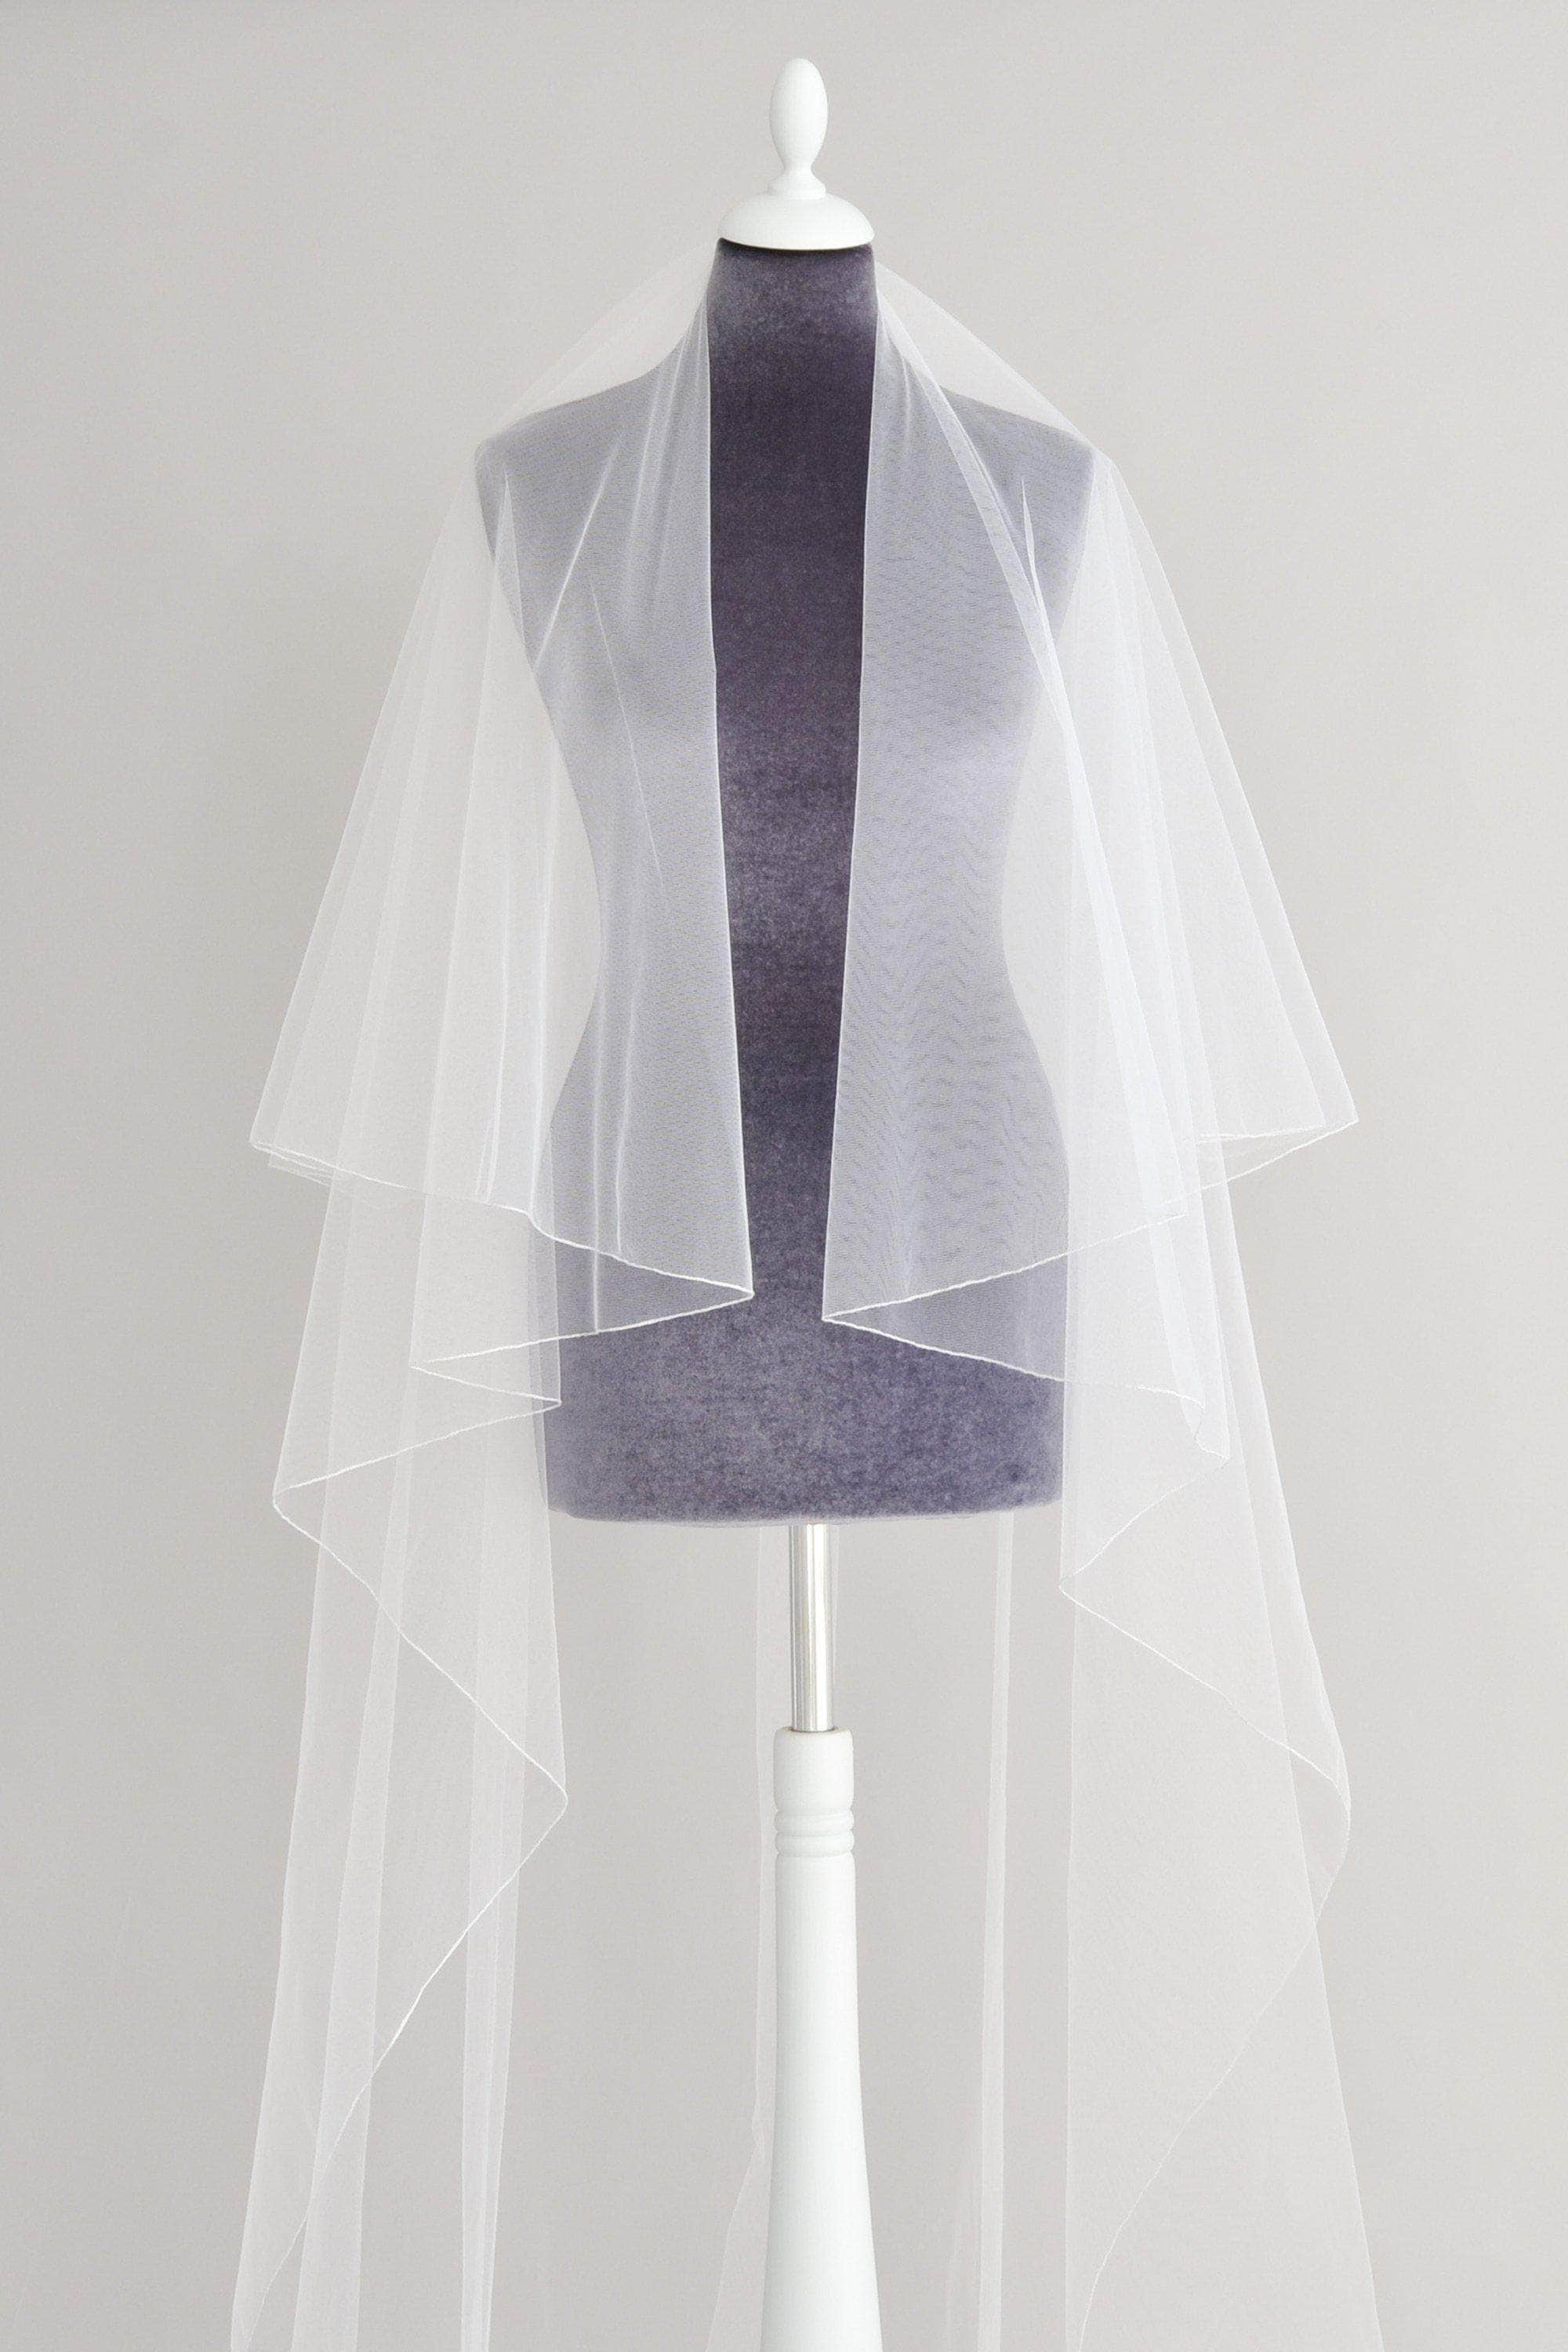 Wedding Veil Pencil edge two tier wedding veil - 'Ariel'